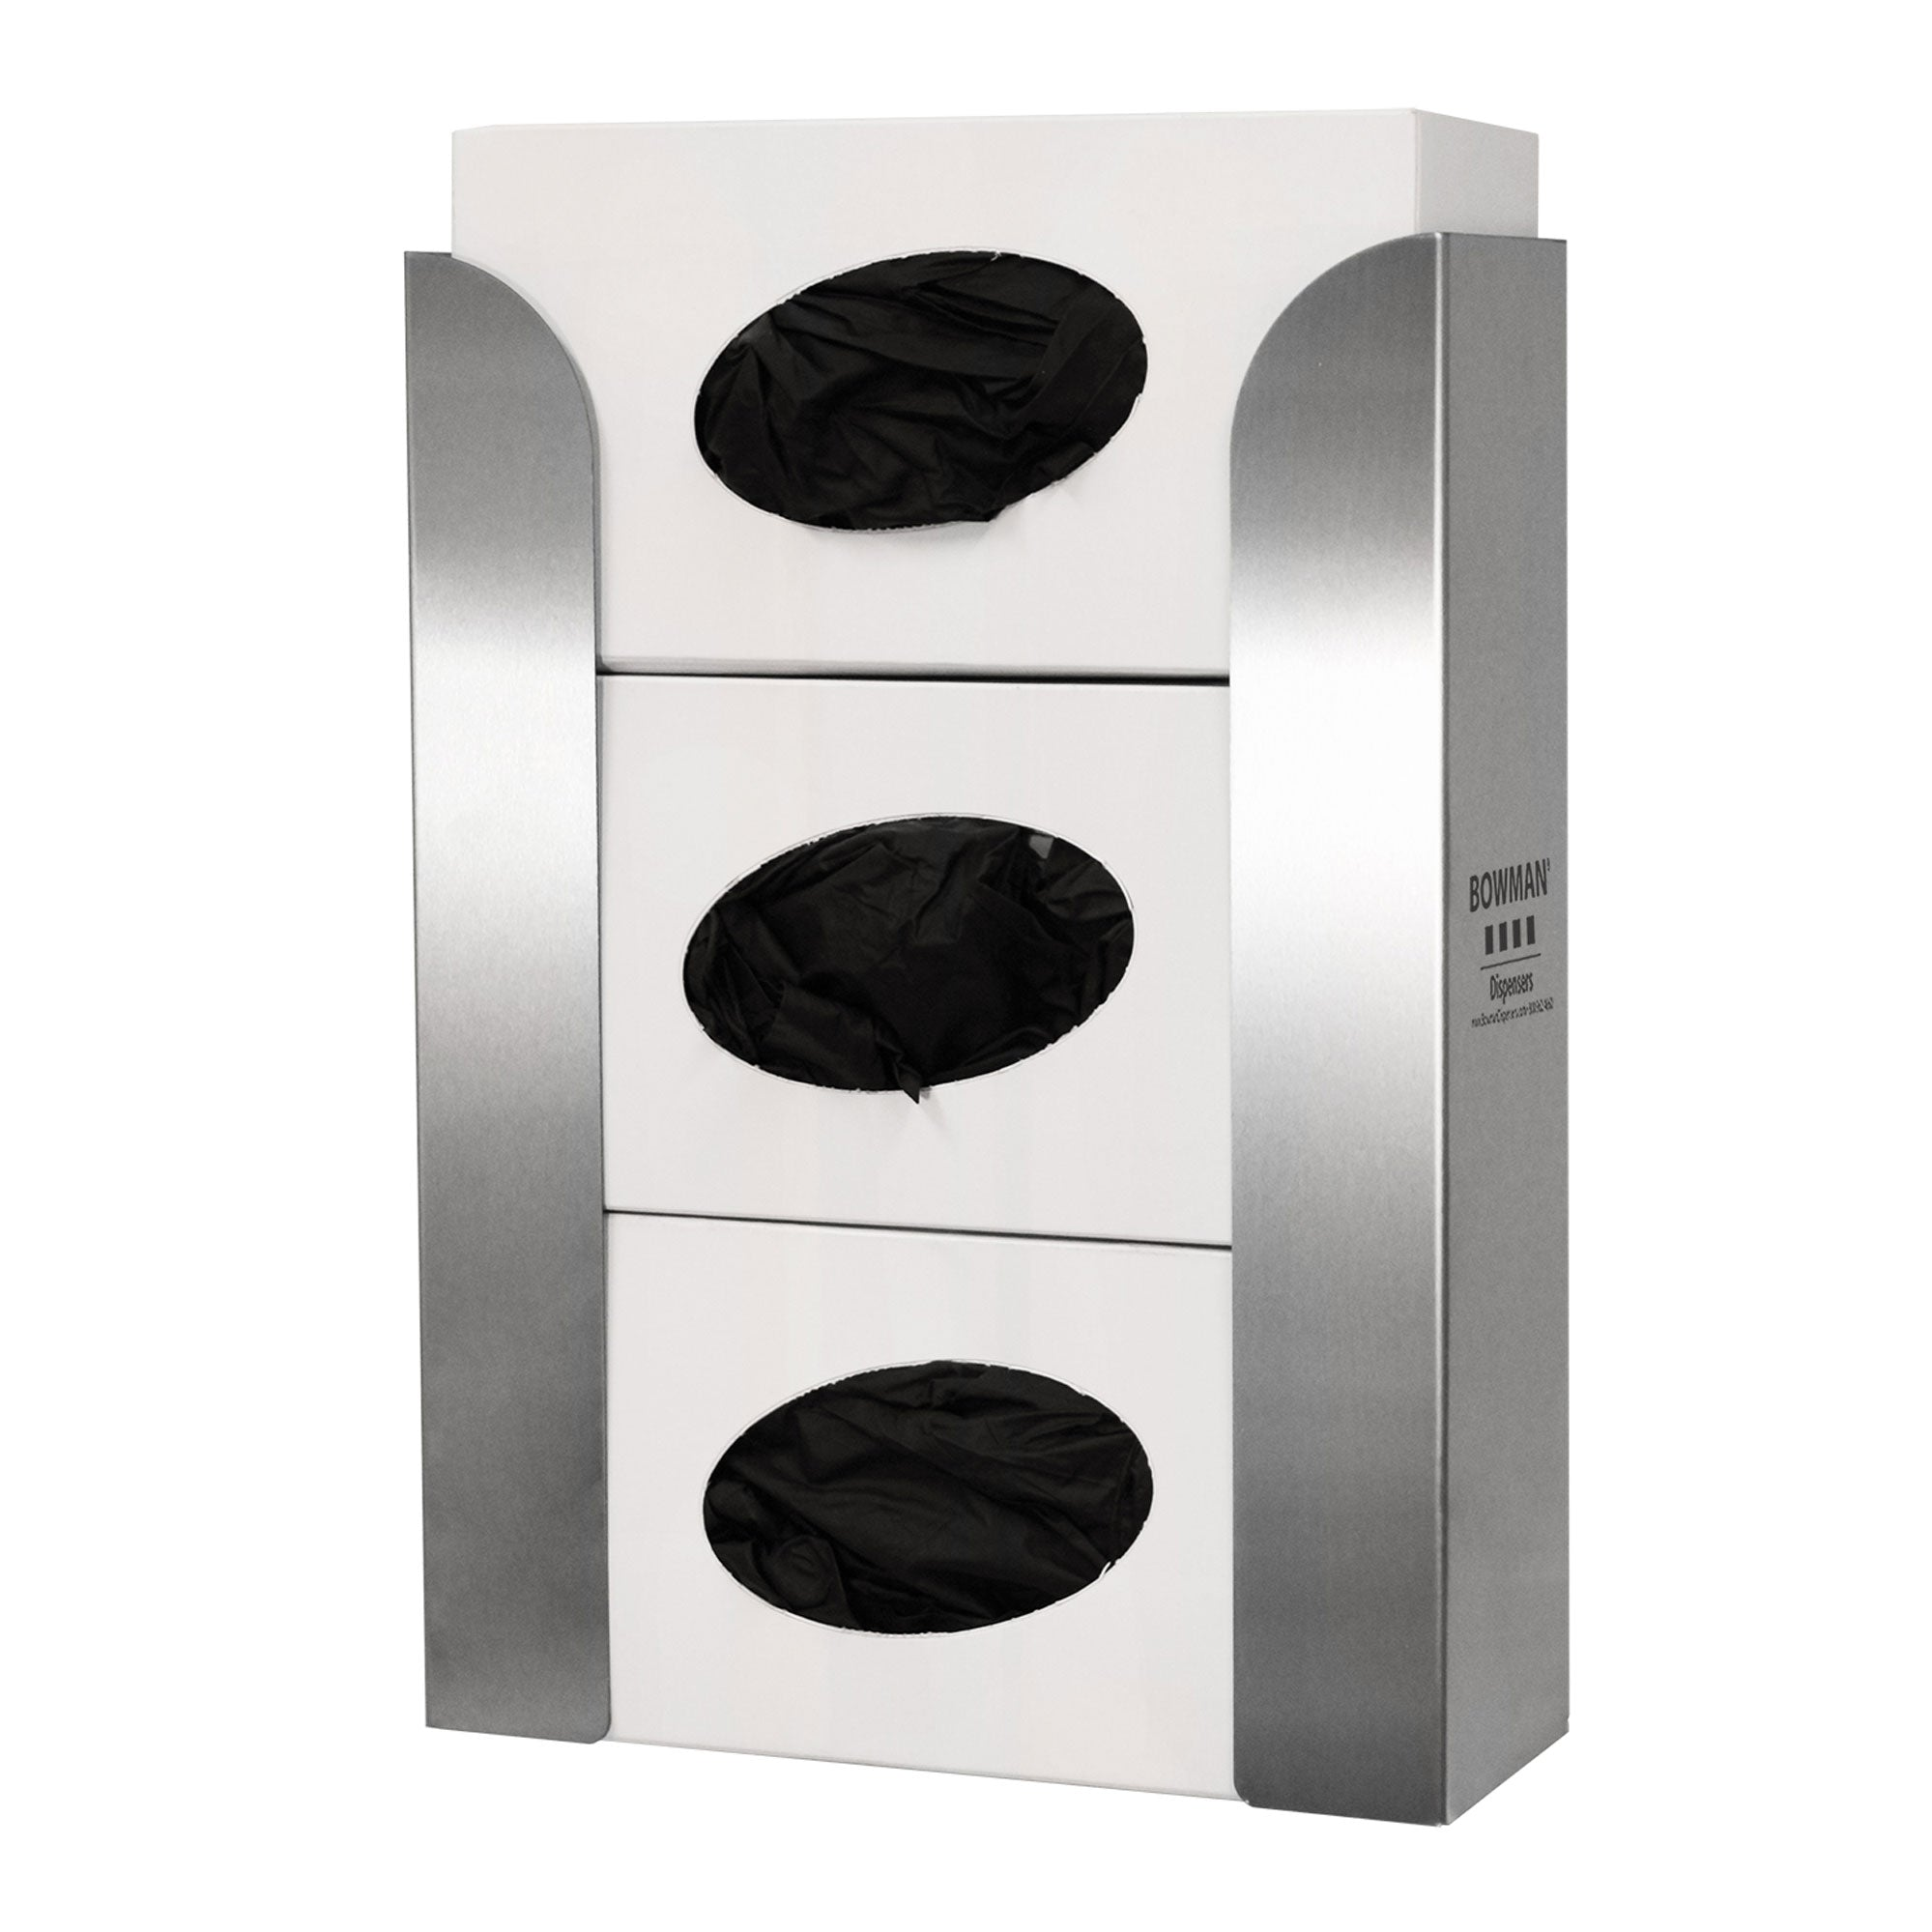 Bowman Stainless Steel Top Loading Triple Glove Box Dispenser